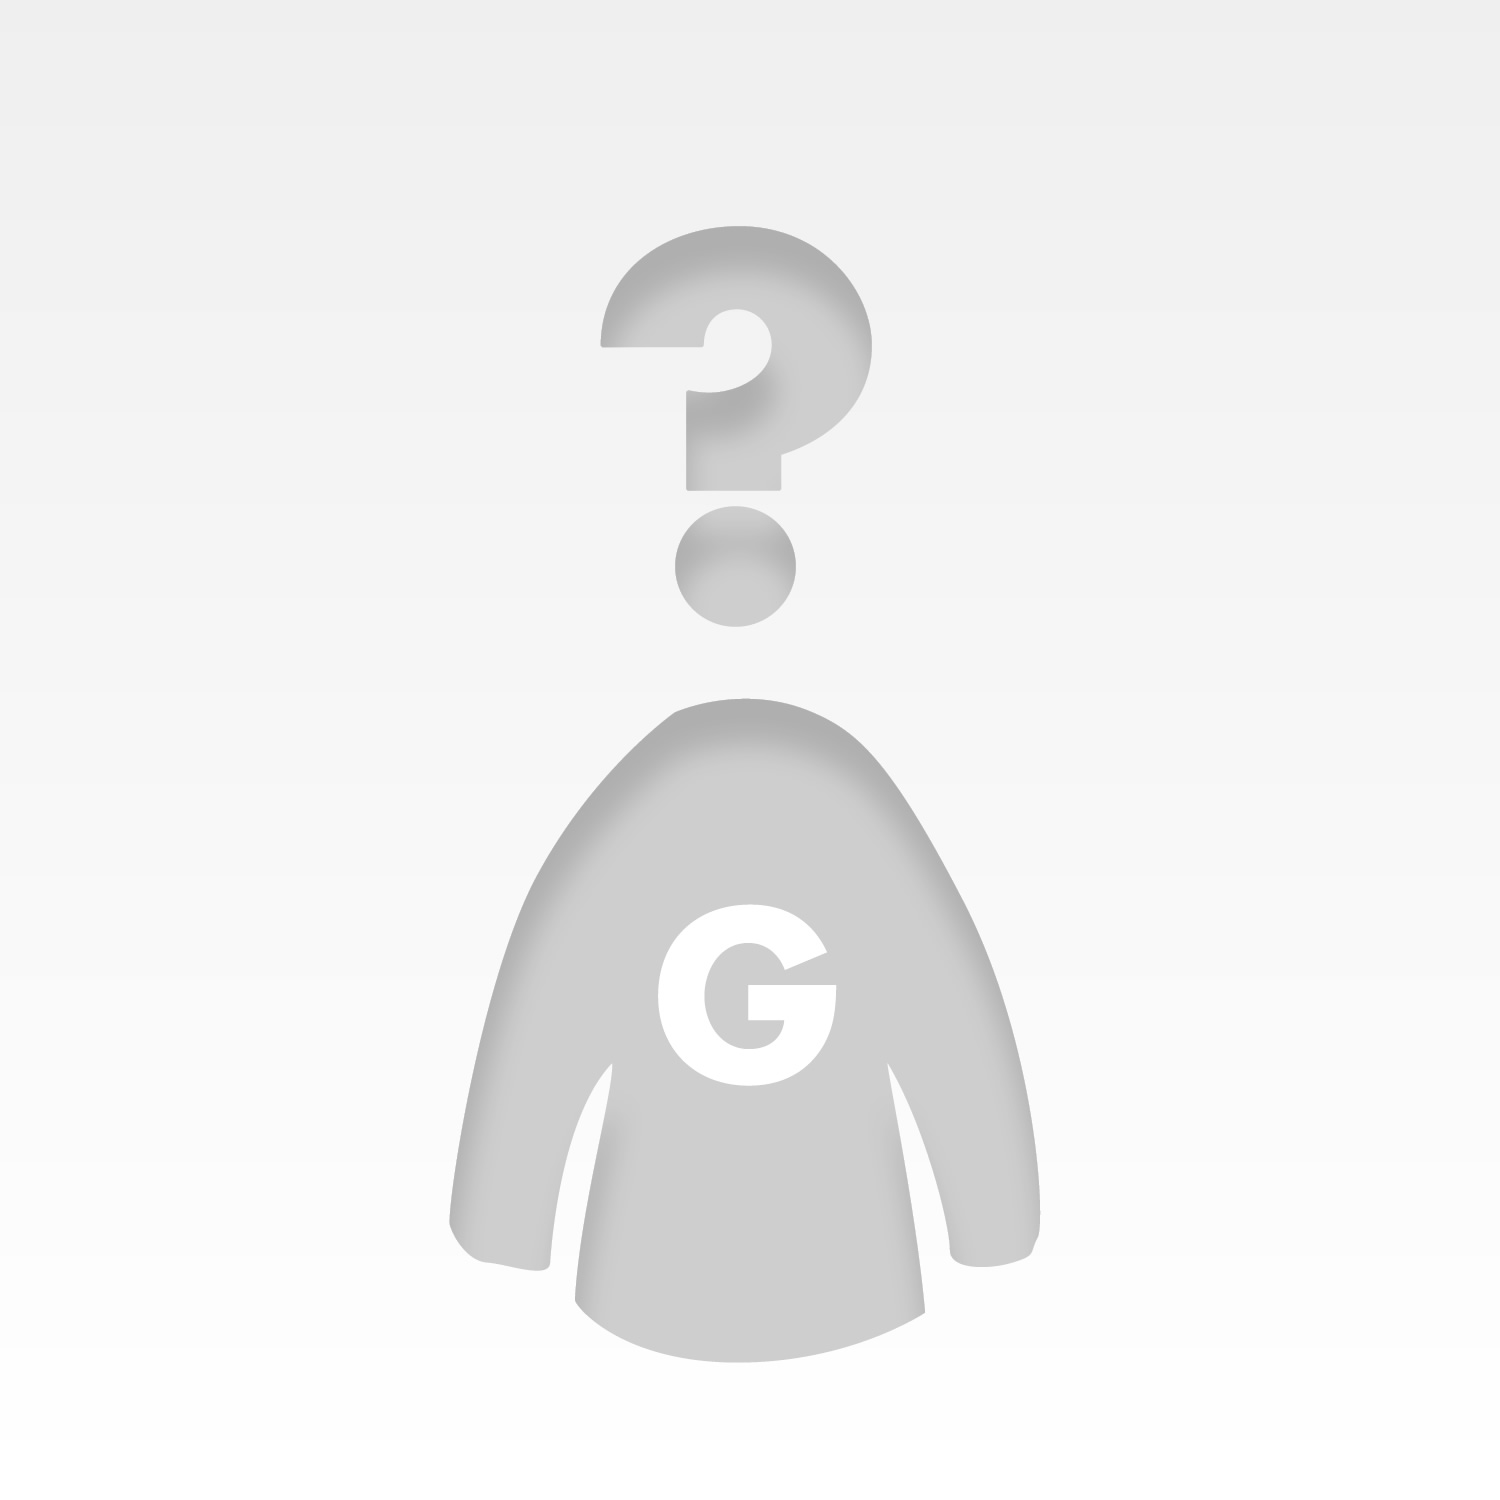 guillemgarcia580897adc3773\'s avatar